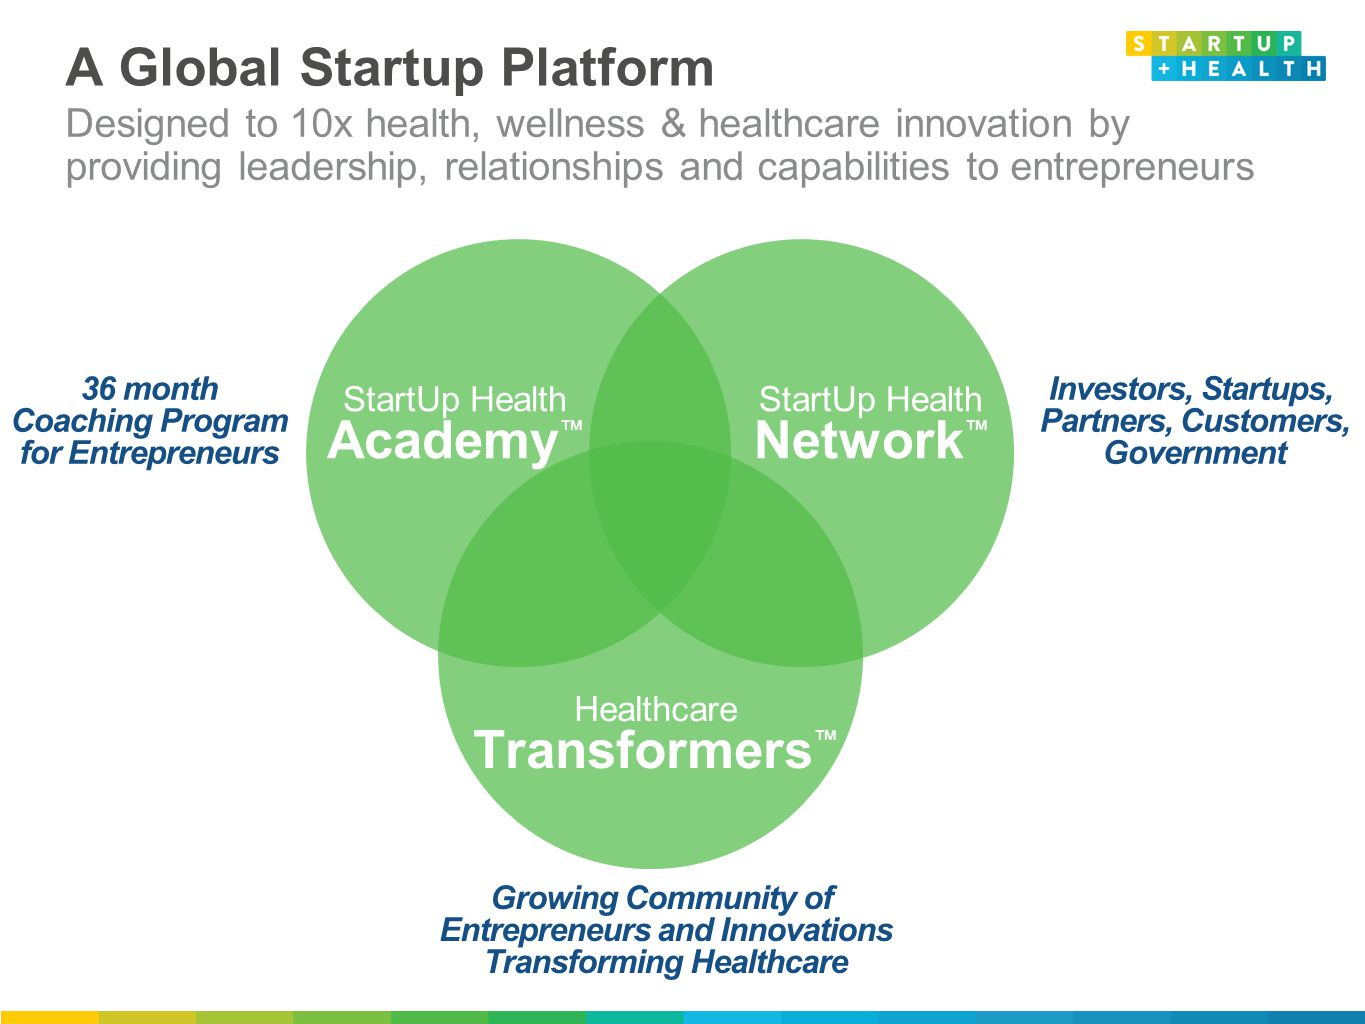 A Global Startup Platform Designed to 10x health, wellness & healthcare innovation by providing leadership, relationships and capabilities to entrepreneurs StartUp Health Academy ™ 36 month Coaching Program for Entrepreneurs StartUp Health Network ™ Healthcare Transformers ™ Investors, Startups, Partners, Customers, Government Growing Community of Entrepreneurs and Innovations Transforming Healthcare